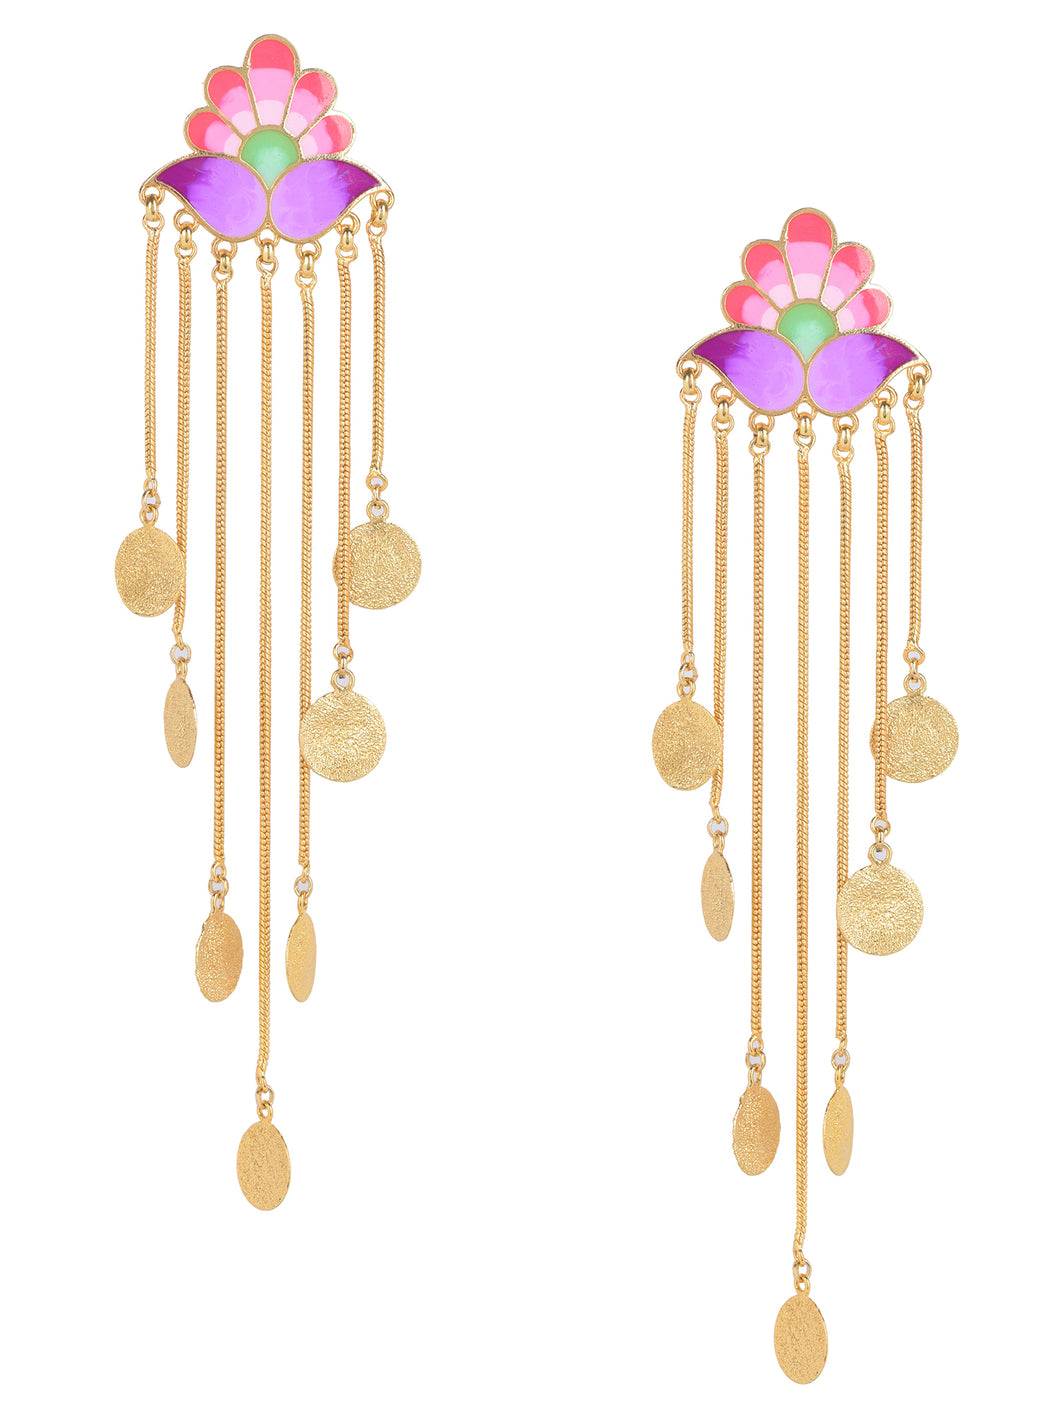 Paradise falls earrings